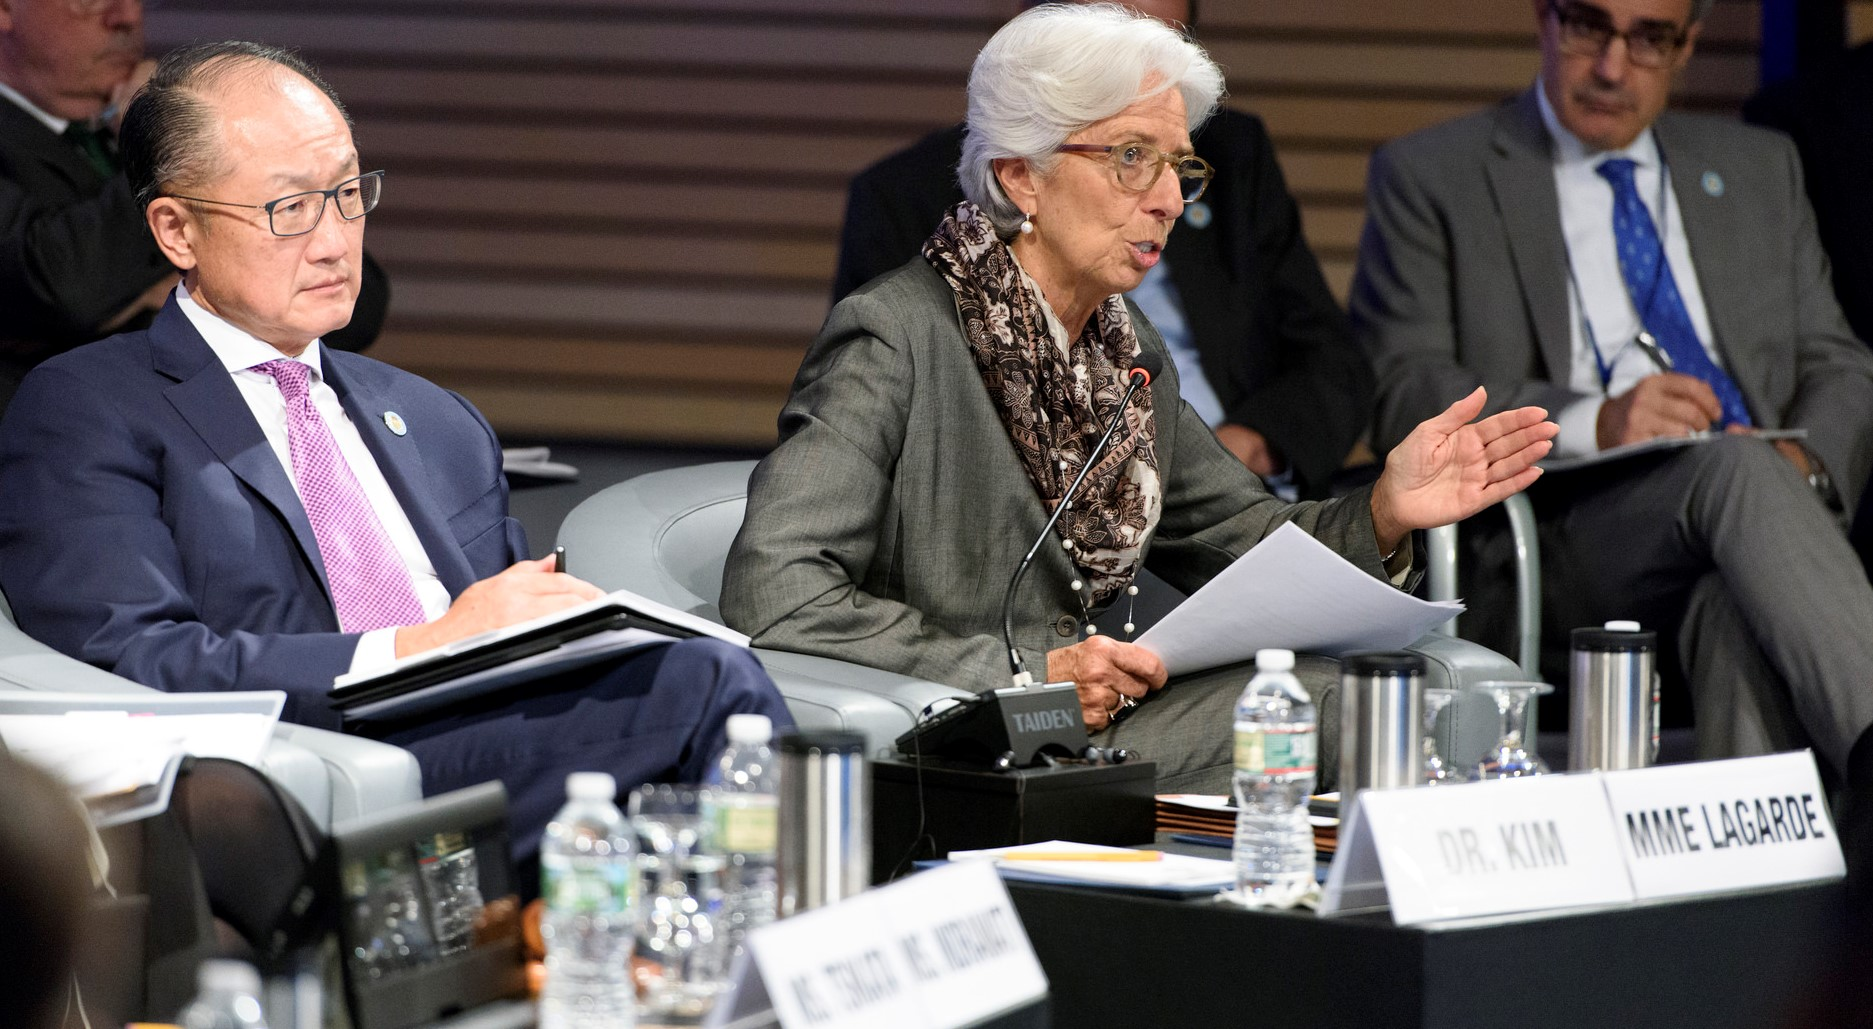 World Bank President Jim Yong Kim and IMF Managing Director Christine Lagarde, October 2017 (Photo: World Bank/Flickr)